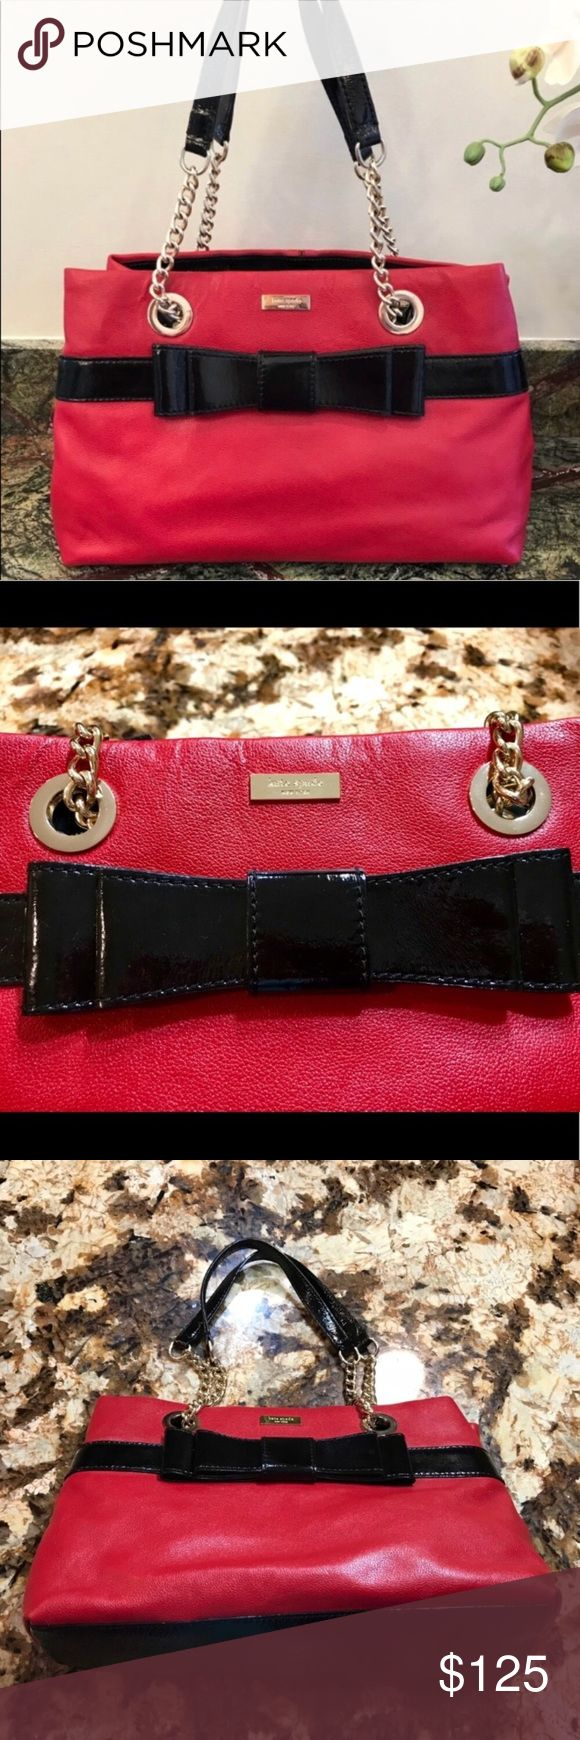 ♠️Red Kate Spade Shoulder Bag♠️ EUC chain strap red leather bag with adorable black bow detail and gold tone hardware. Slight wear on bottom corners but barely noticeable, see photos. Measurements to come but this is a medium size bag. Open to reasonable offers. Bundle for private discount and lower shipping. kate spade Bags